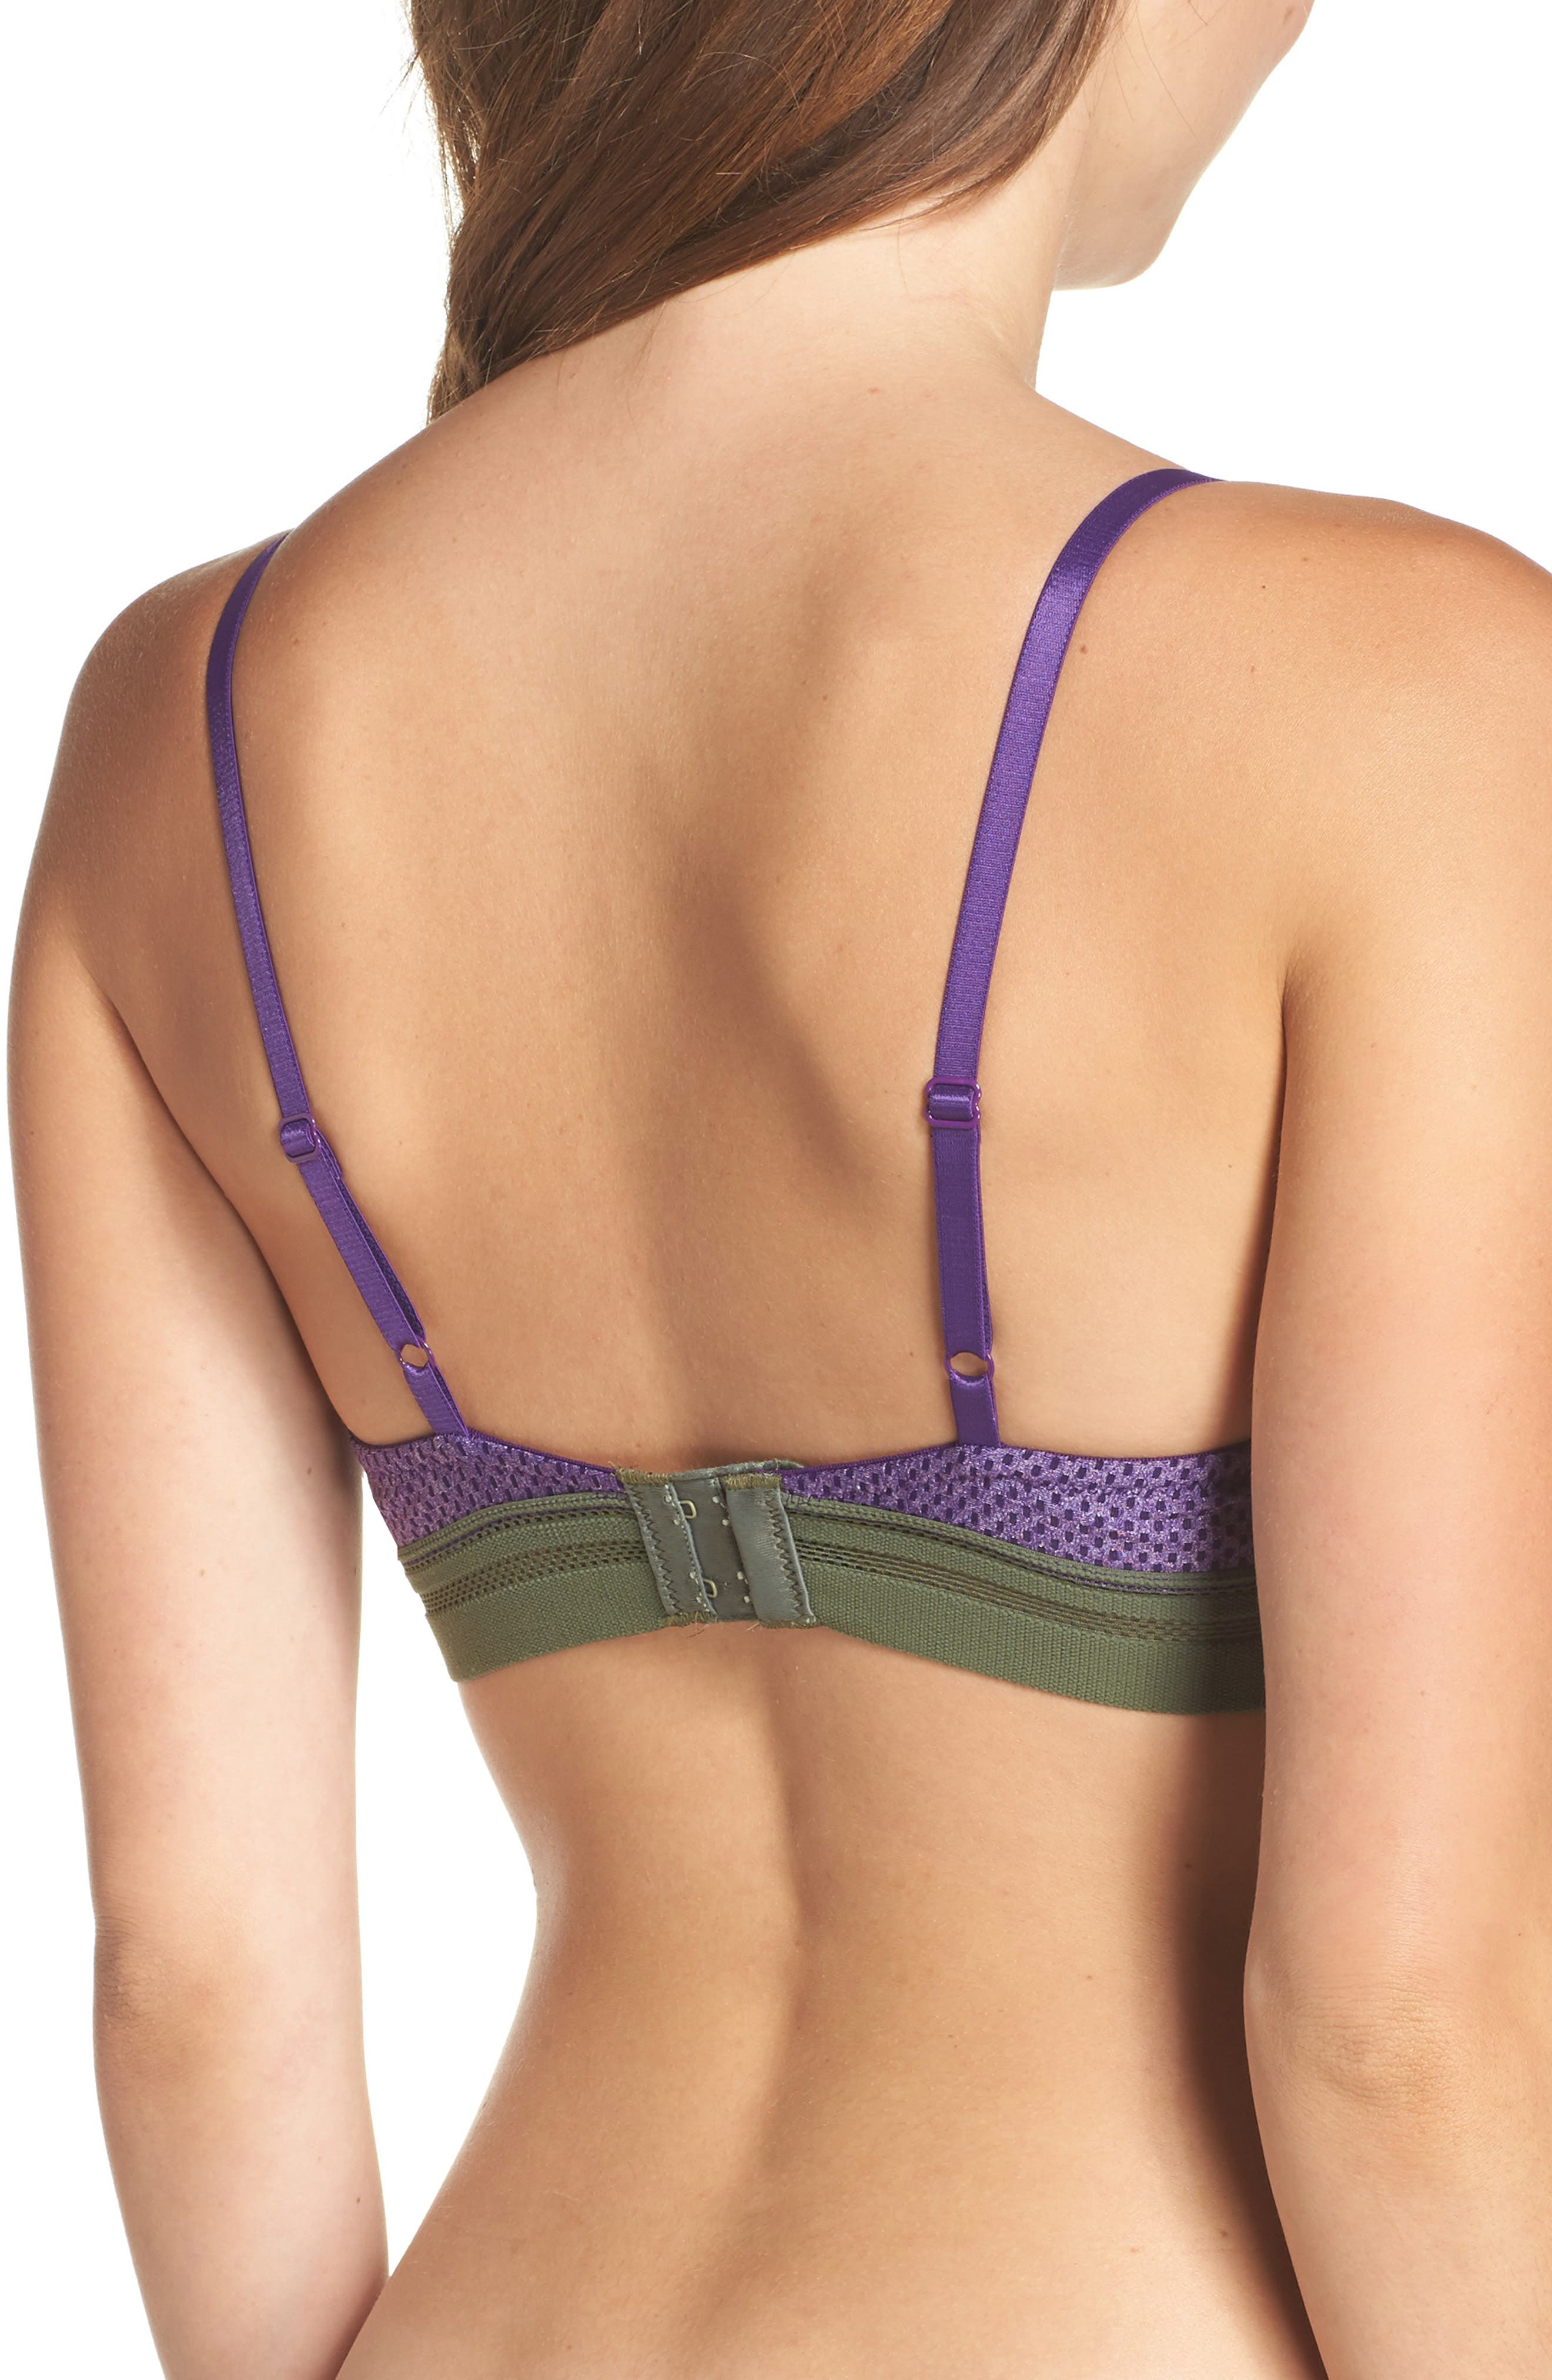 Spectator Seamless Underwire T-Shirt Bra,                             Alternate thumbnail 2, color,                             Acai